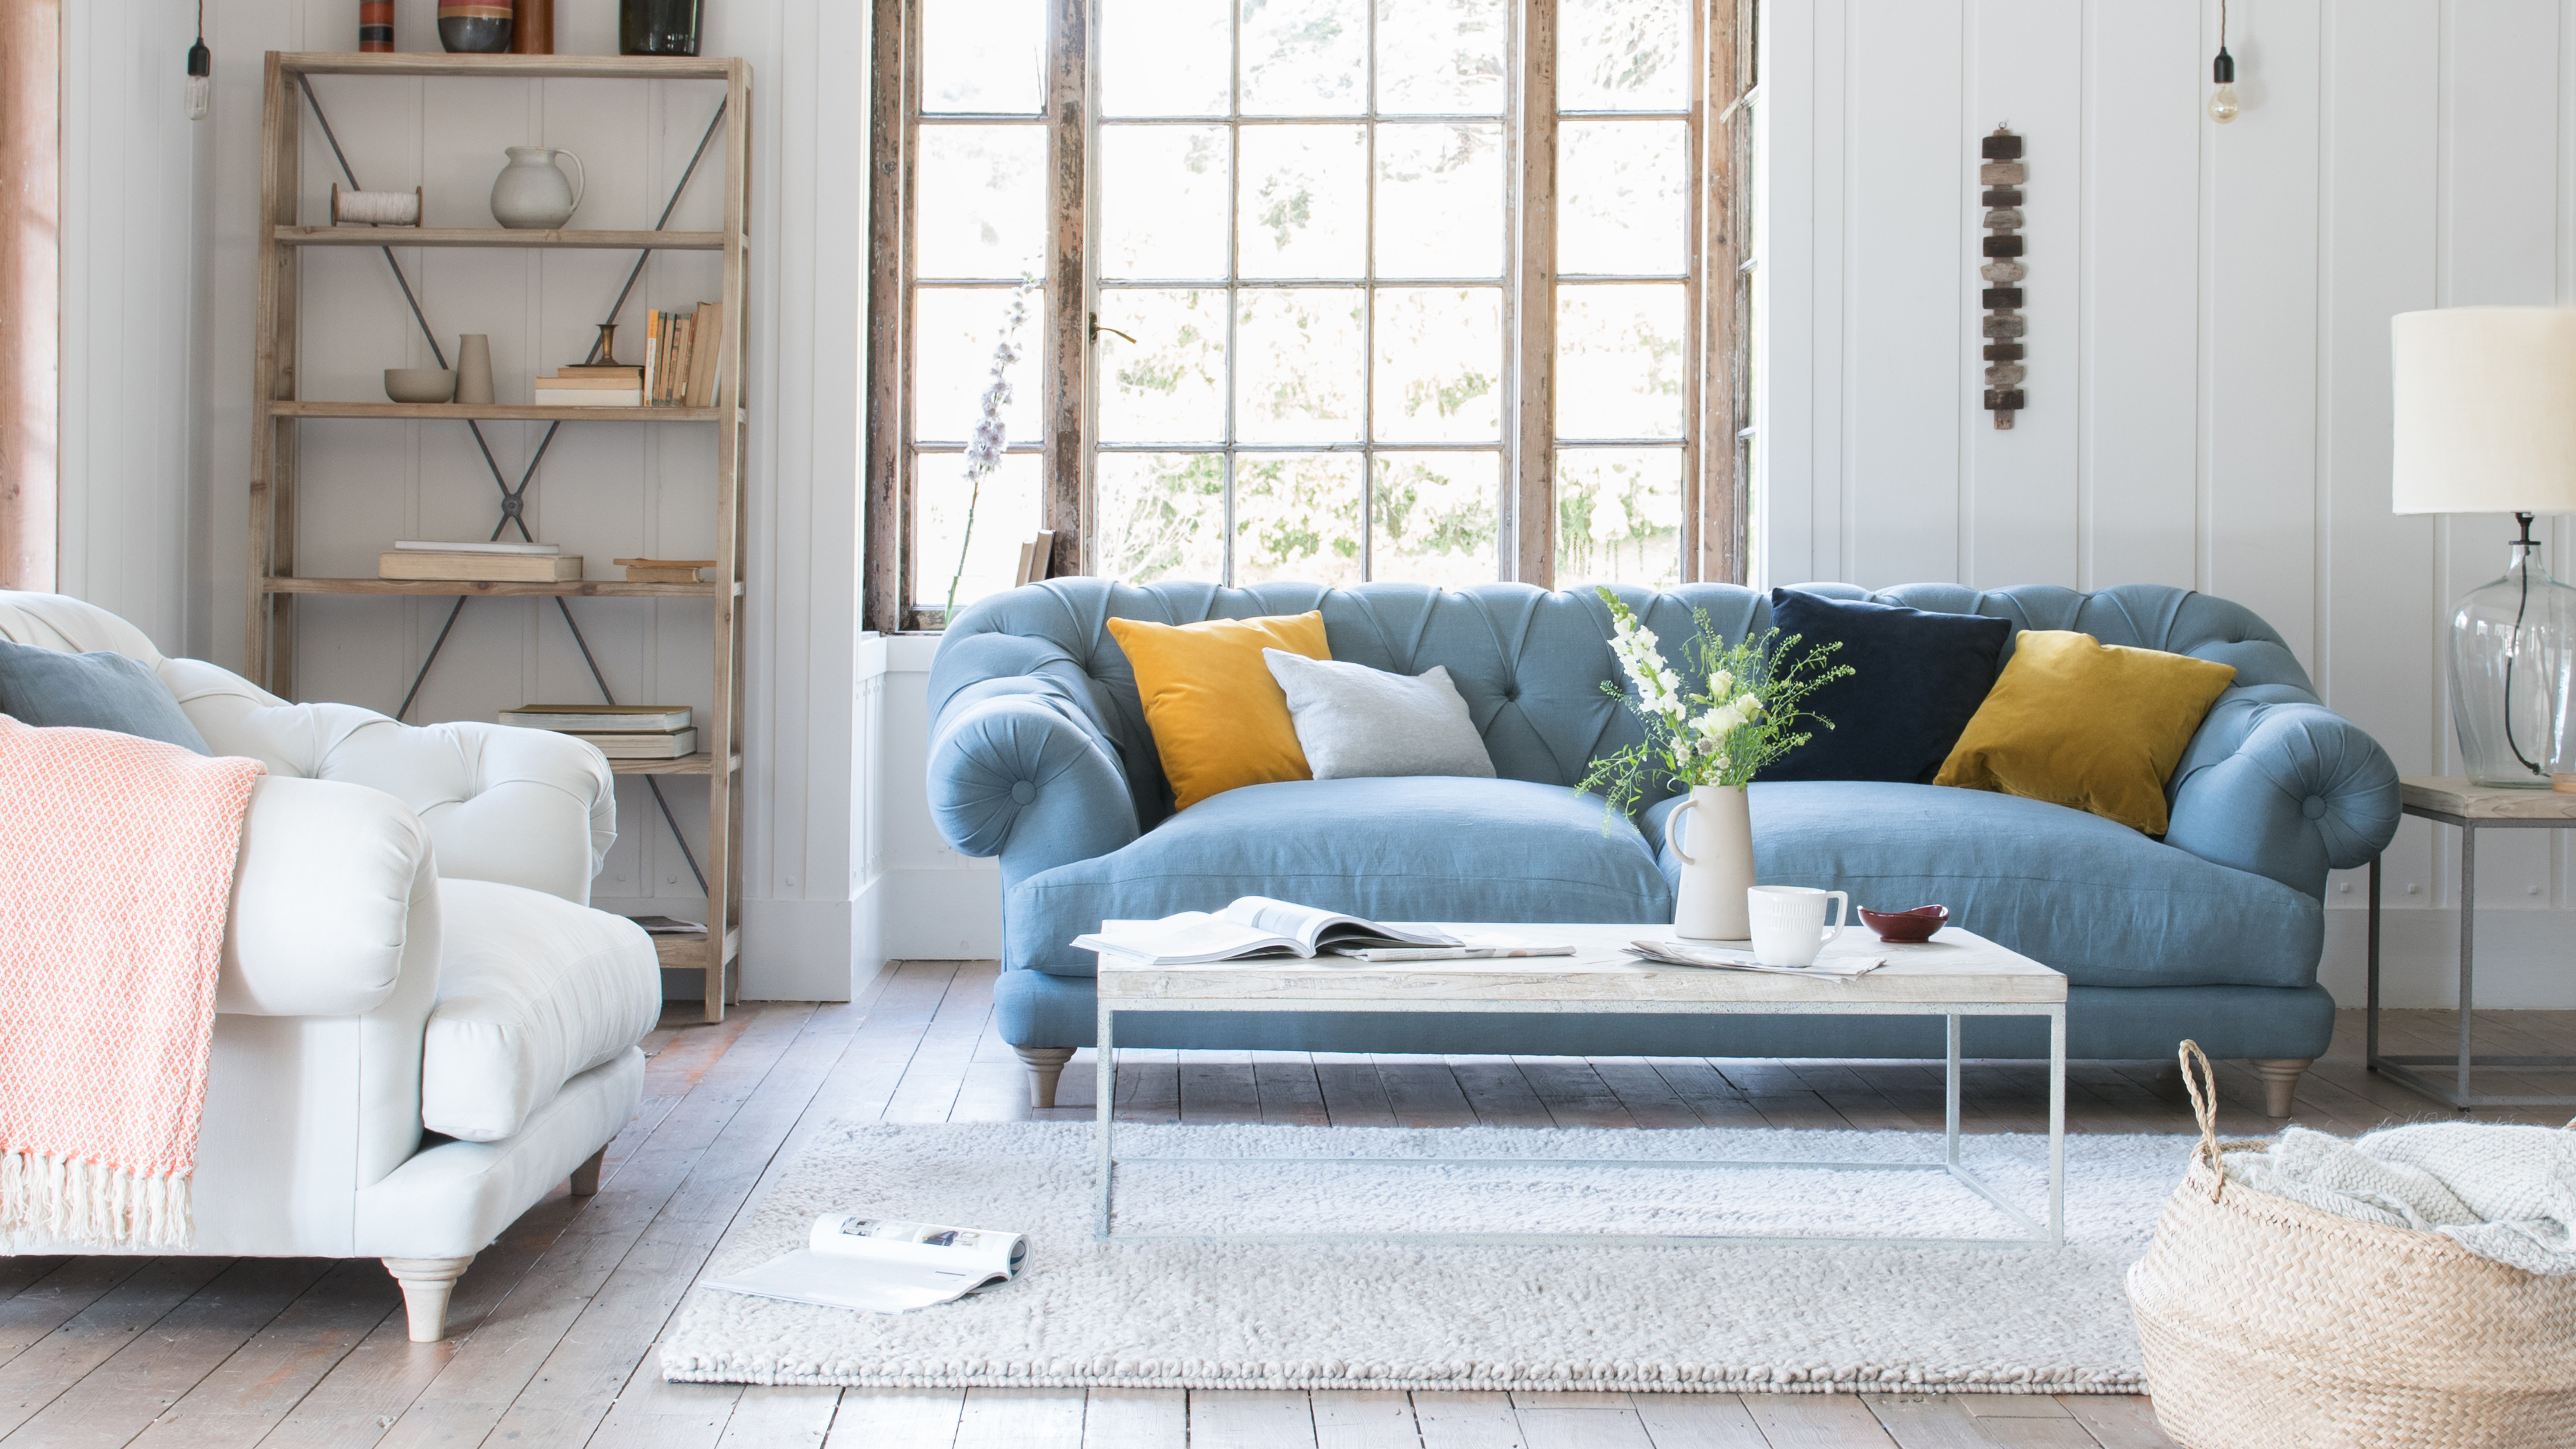 Upholstery for the sofa: what to choose 16